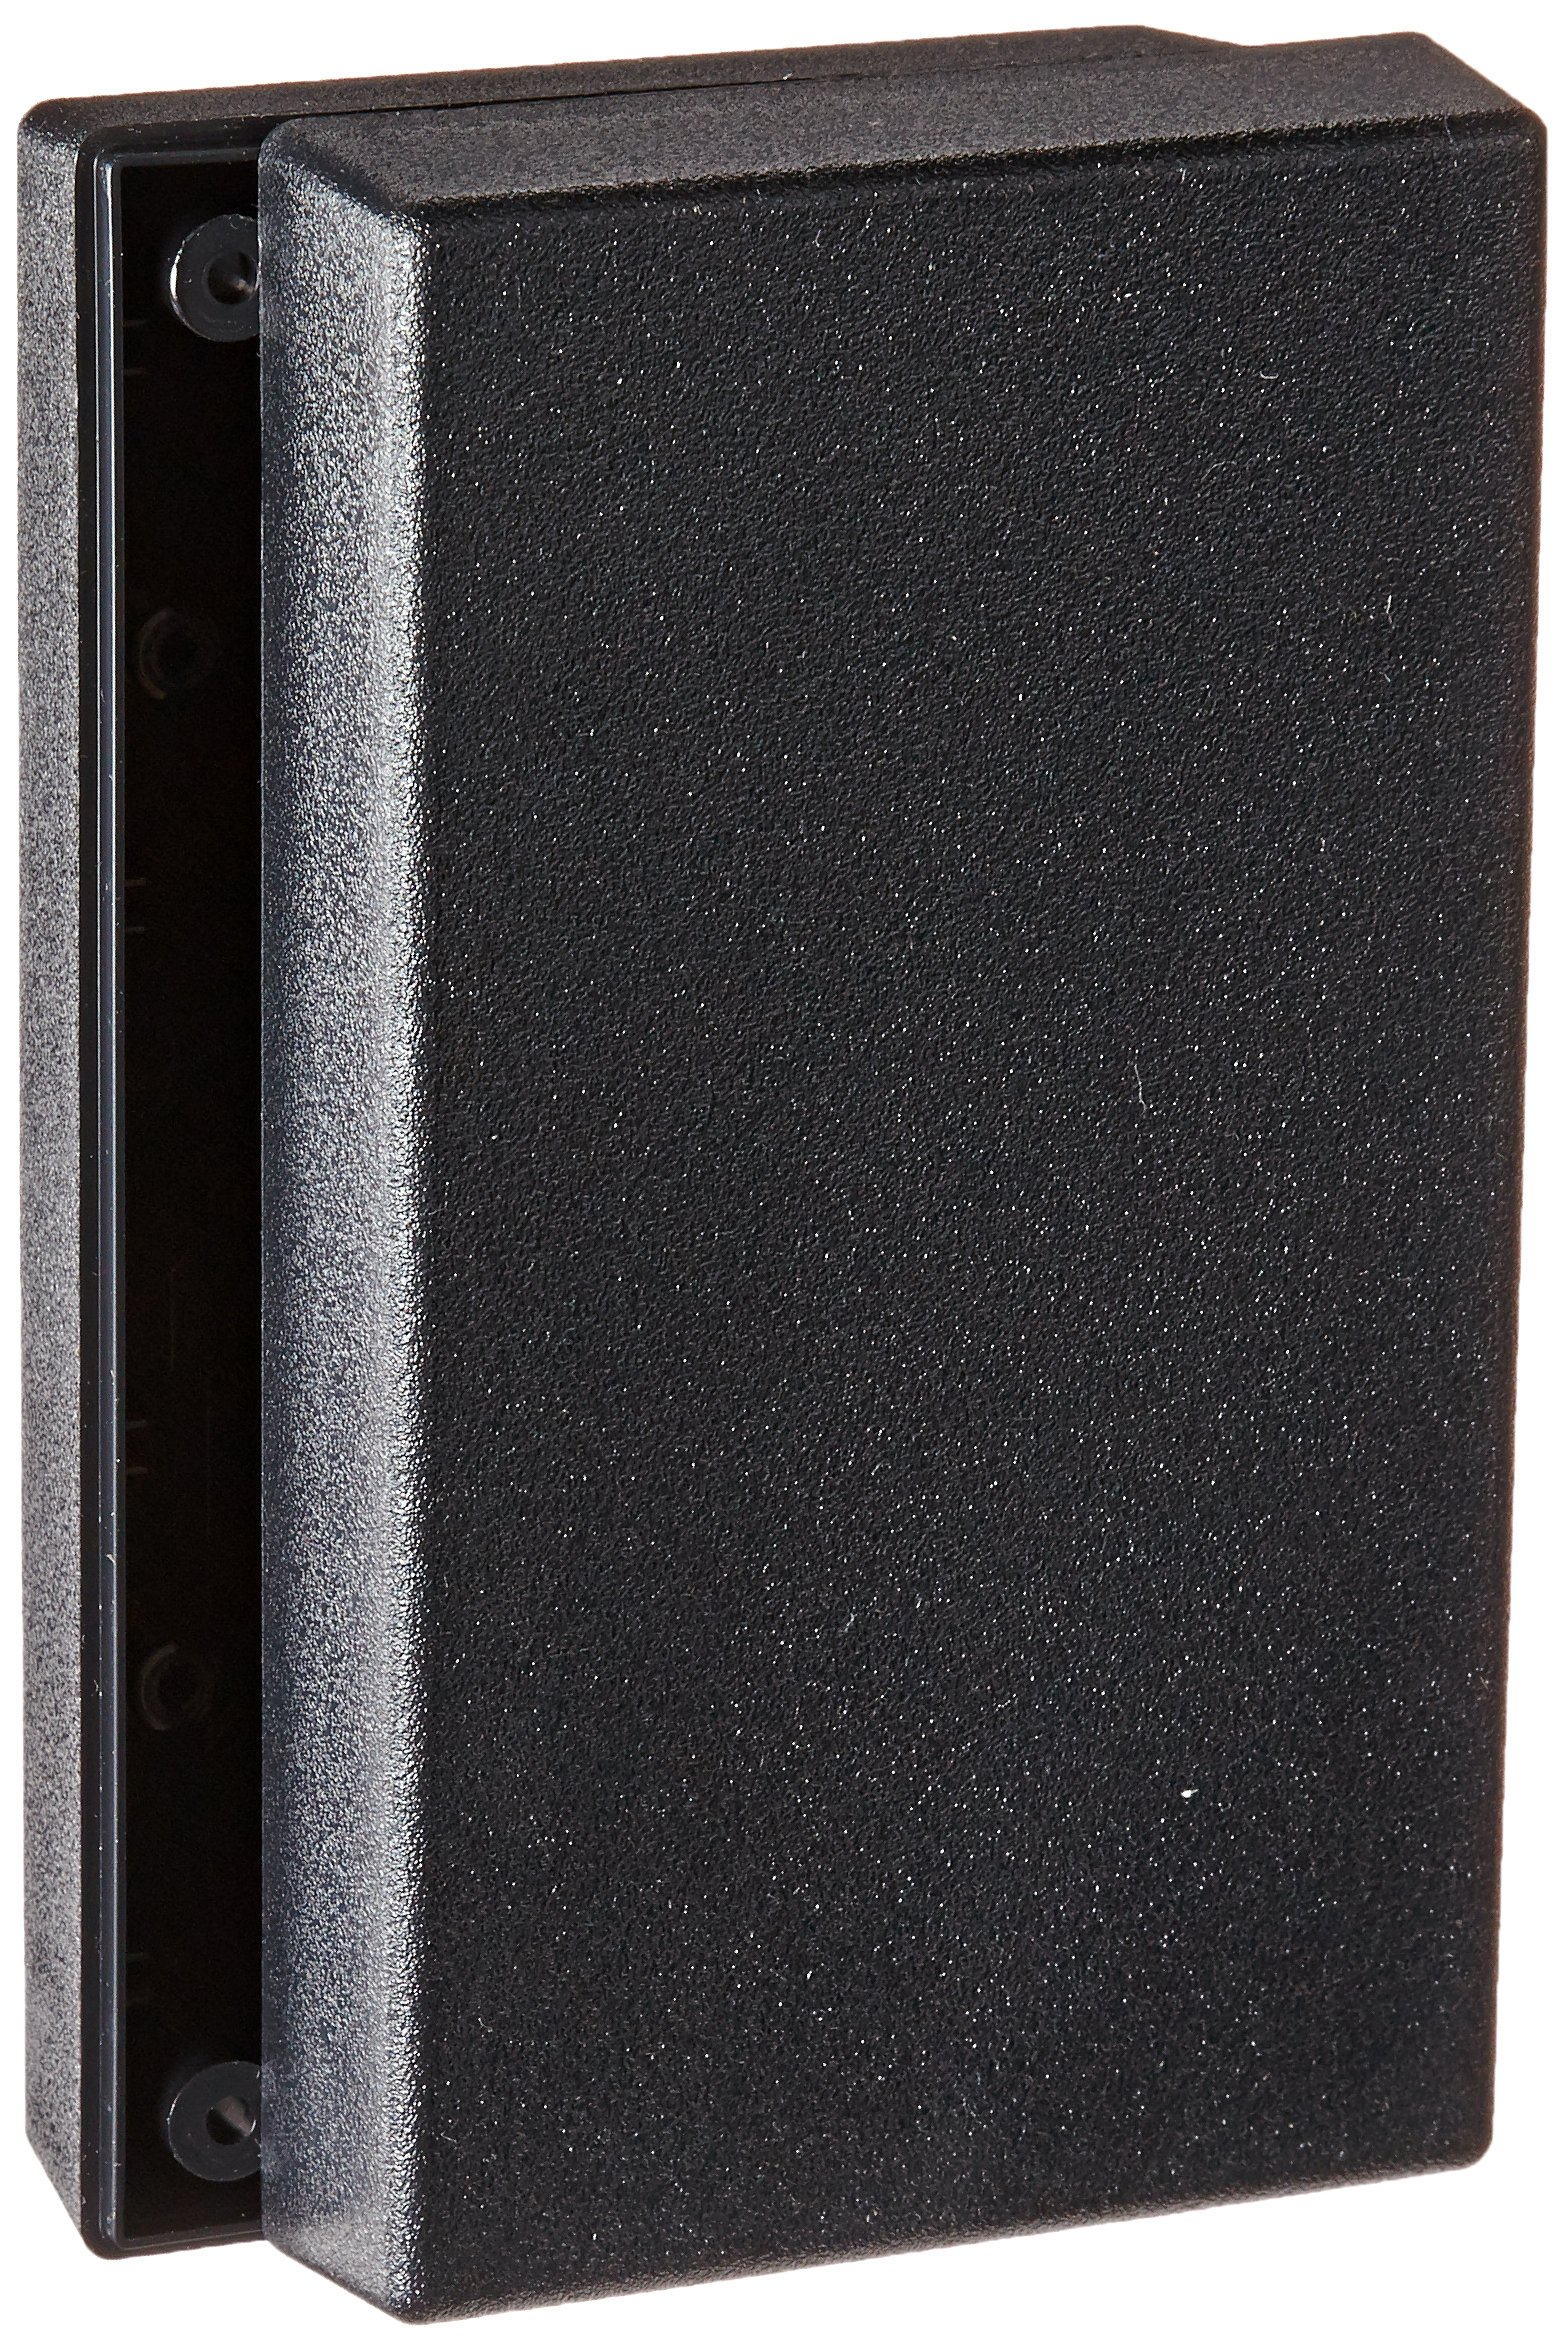 Serpac 151 ABS Plastic Enclosure, 5-5/8'' Length x 3-1/4'' Width x 1-1/2'' Height, Black